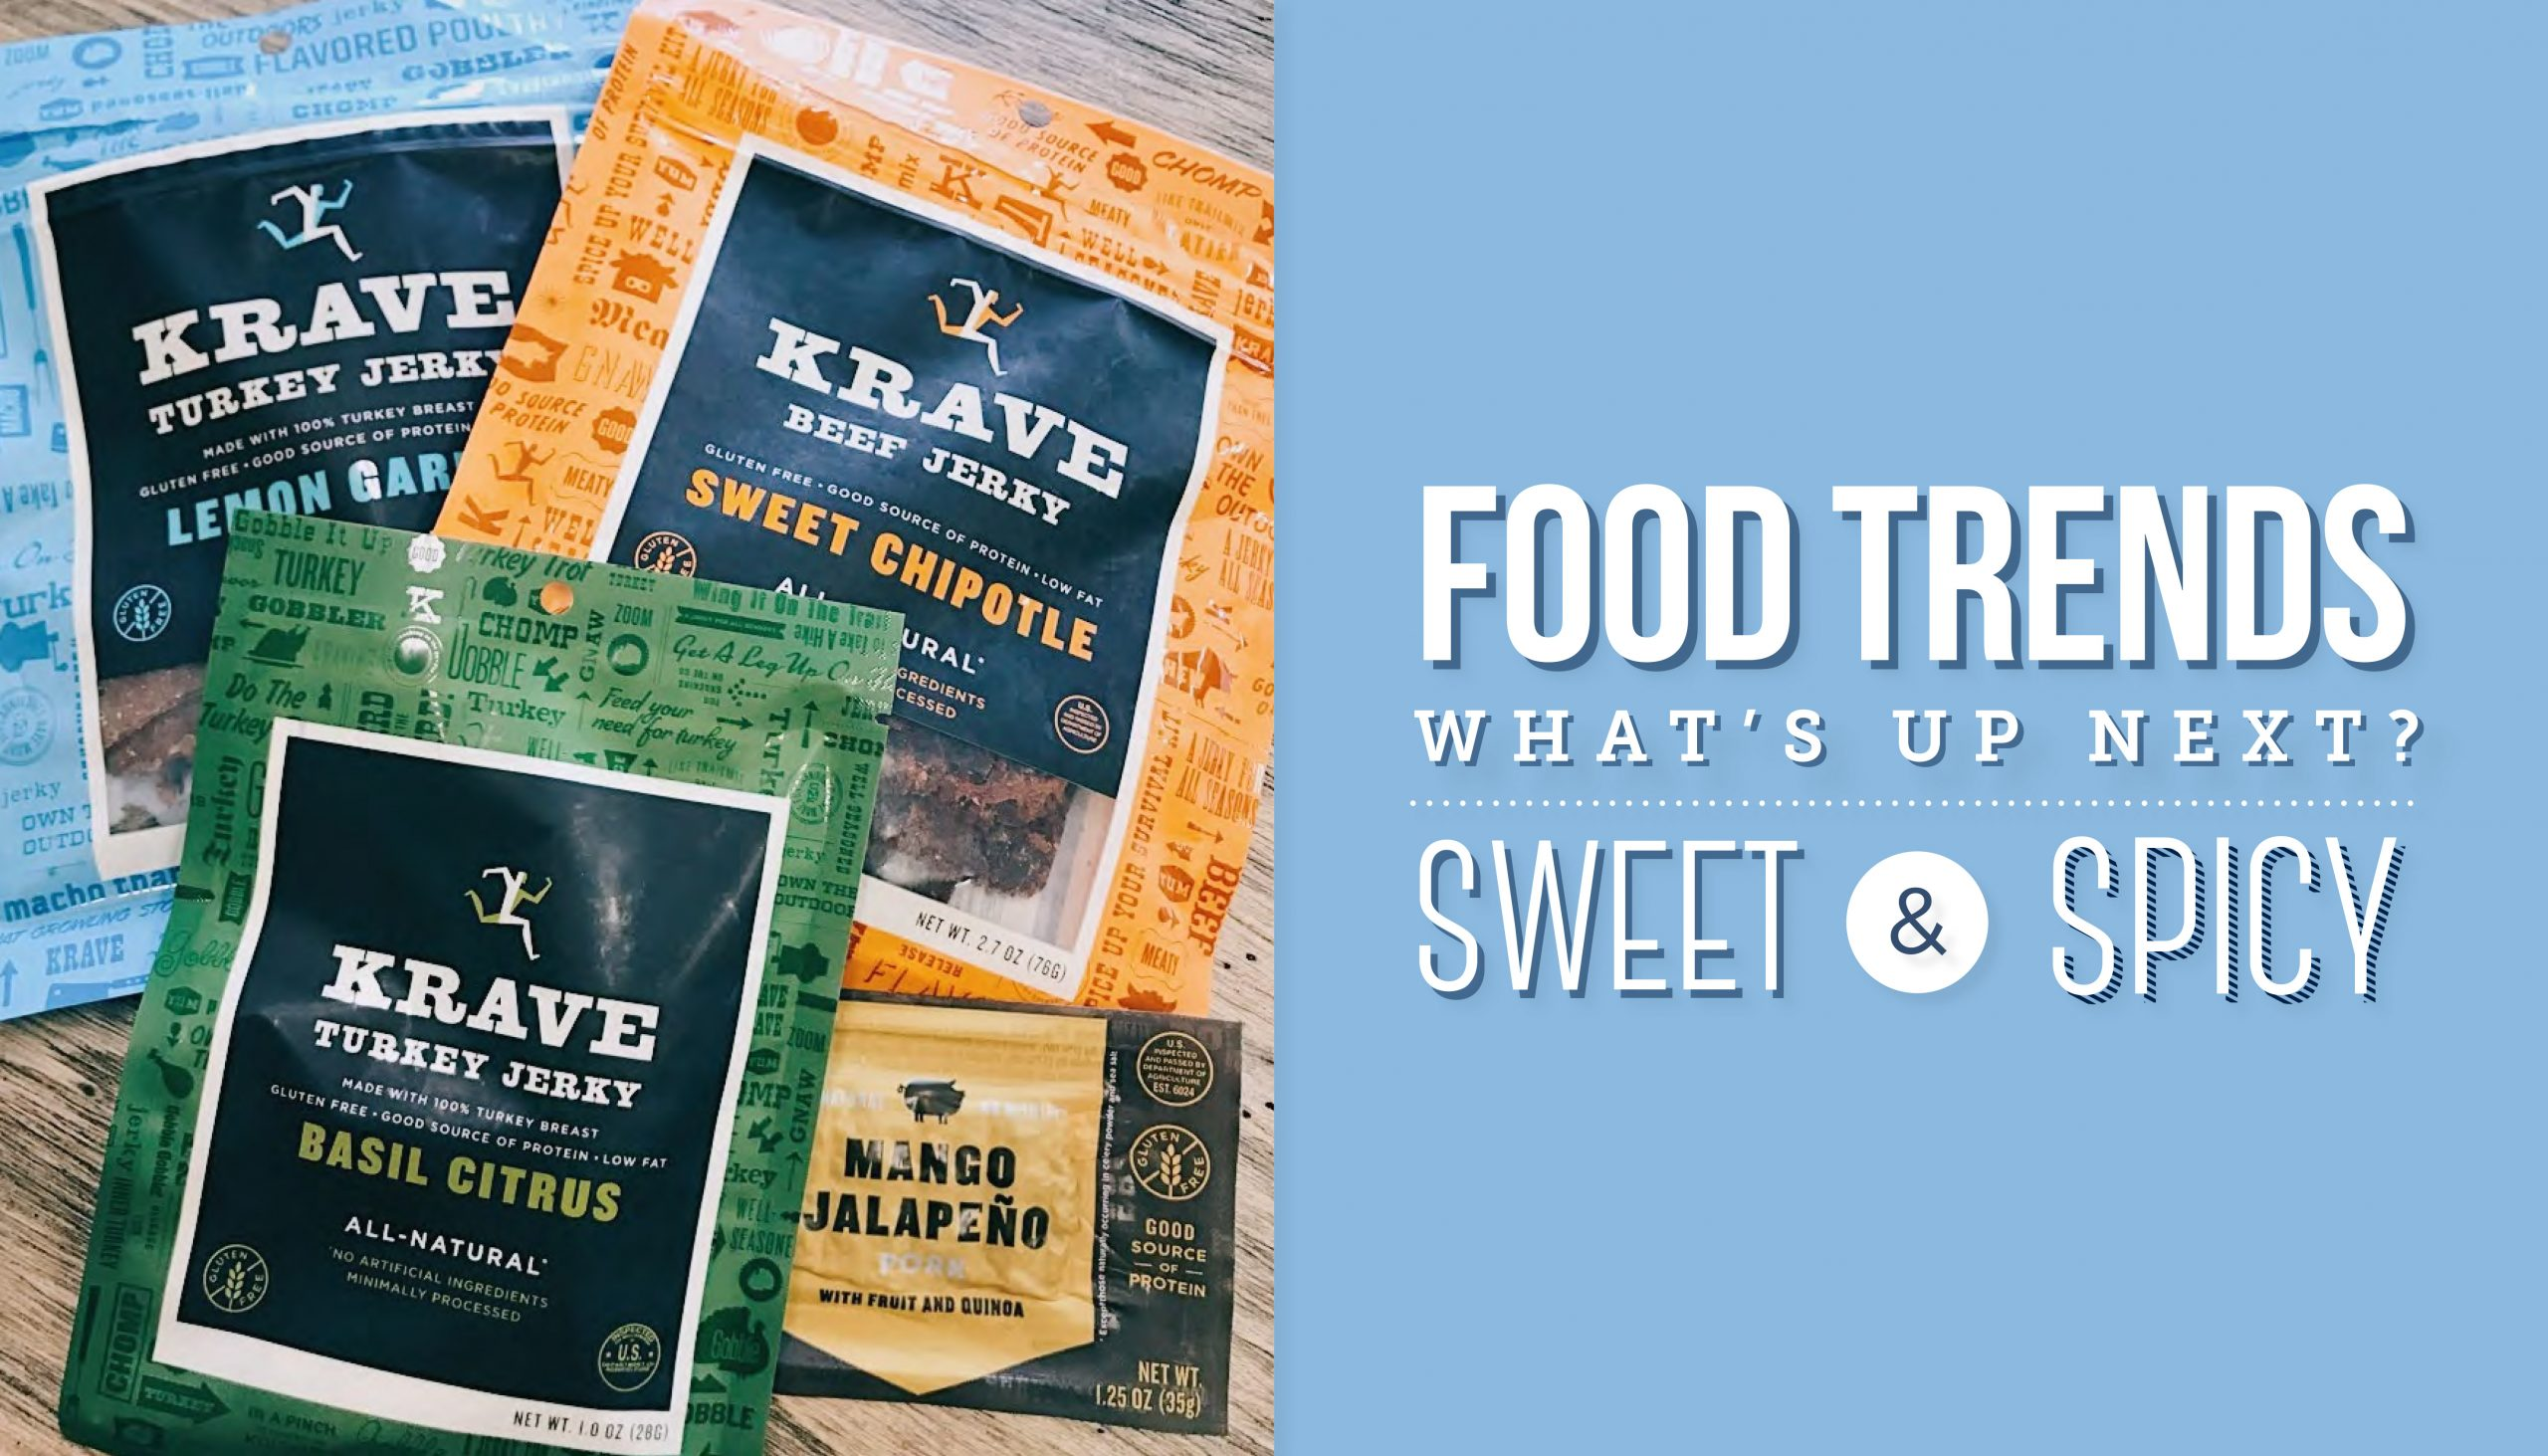 Food Trends Sweet and Spicy